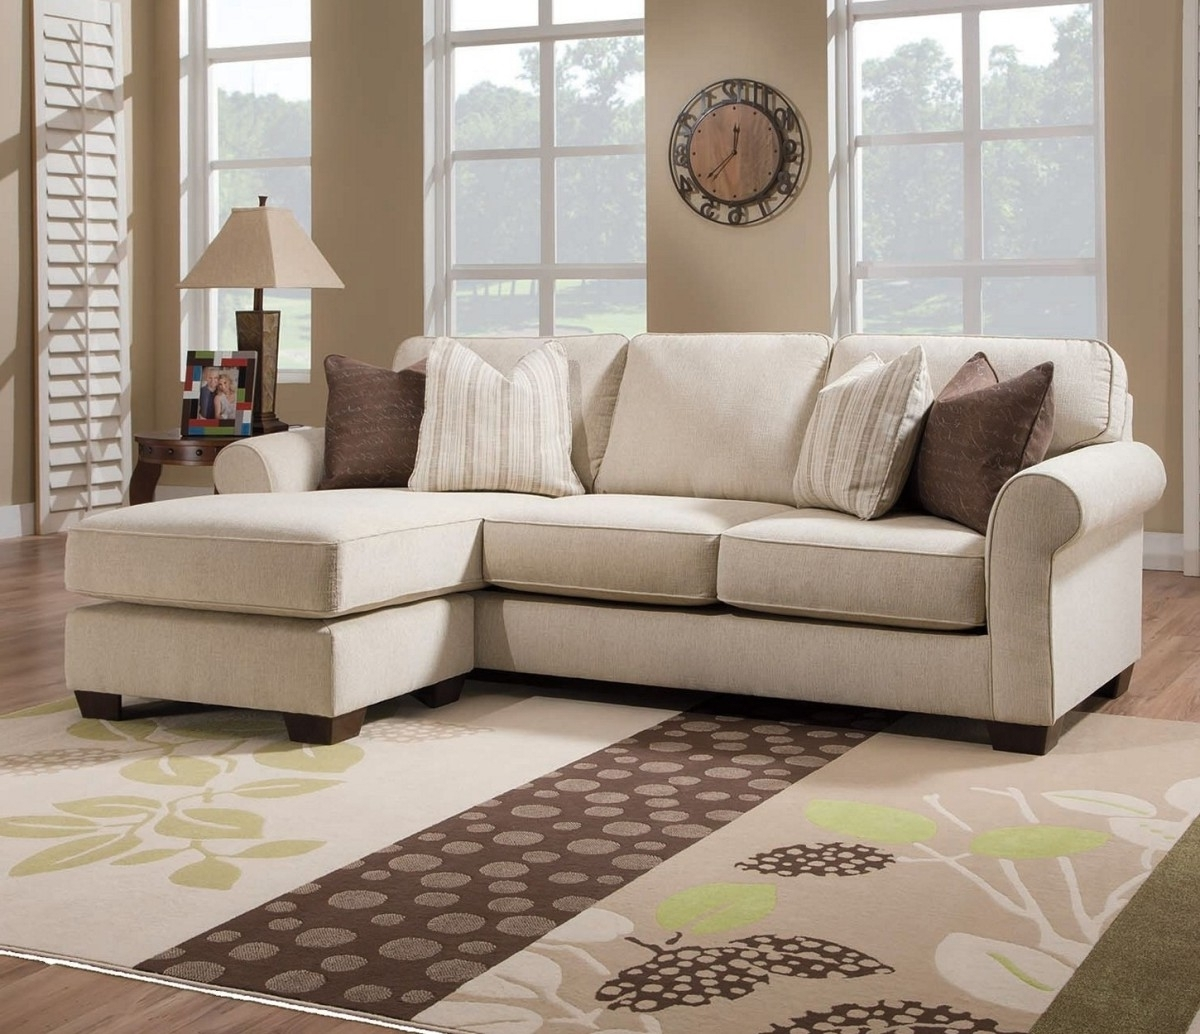 Fashionable Sofa : Small Sectional Sofa With Chaise Lounge Small Couch Set Inside Sams Club Sectional Sofas (View 2 of 15)